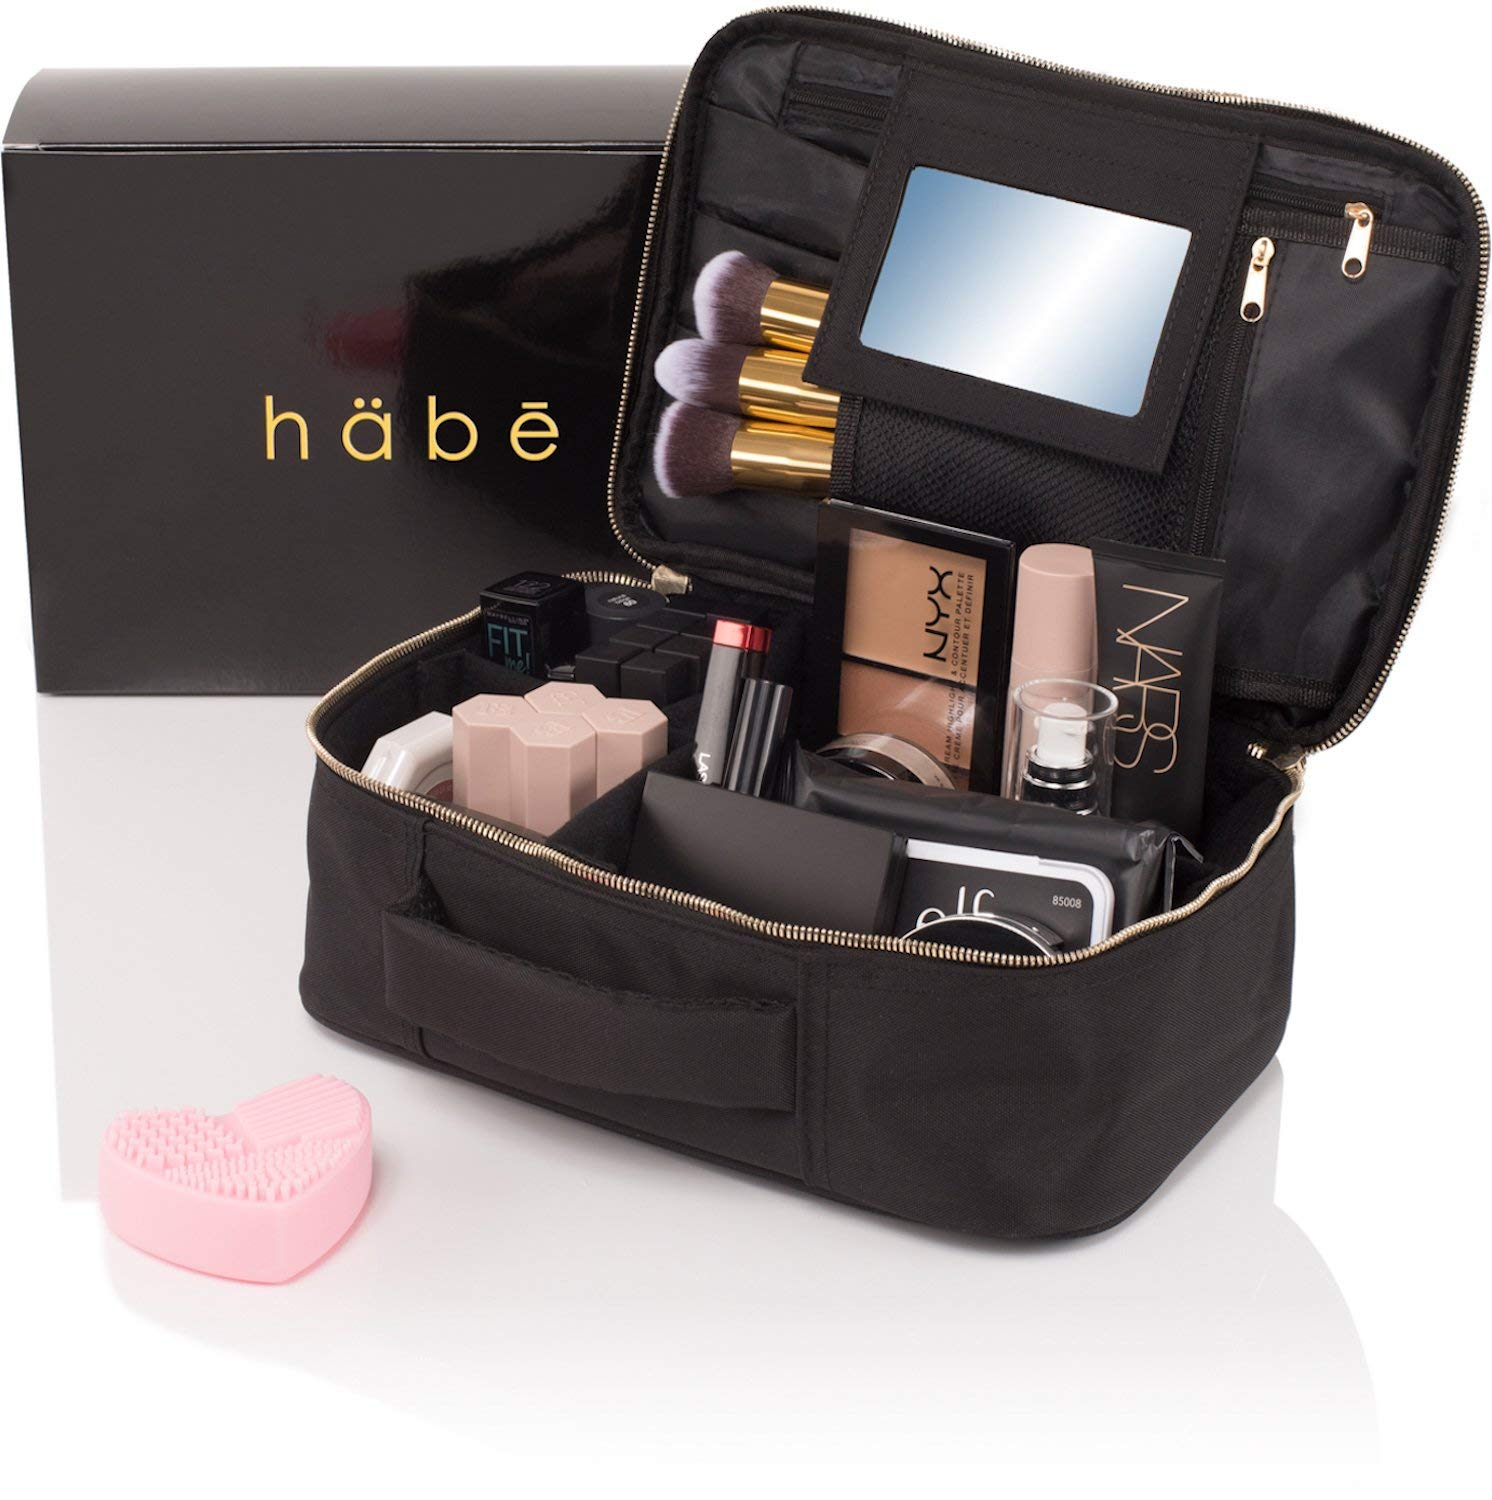 habe Travel Makeup Bag with Mirror - Organize Your Makeup! Make Up Bag Organizer Train Case for Women - Storage Capacity of 3 Cosmetic Bags/Make Up Bags/Make Up Cases (BONUS Make-Up Brush Cleaner) by häbe (Image #2)